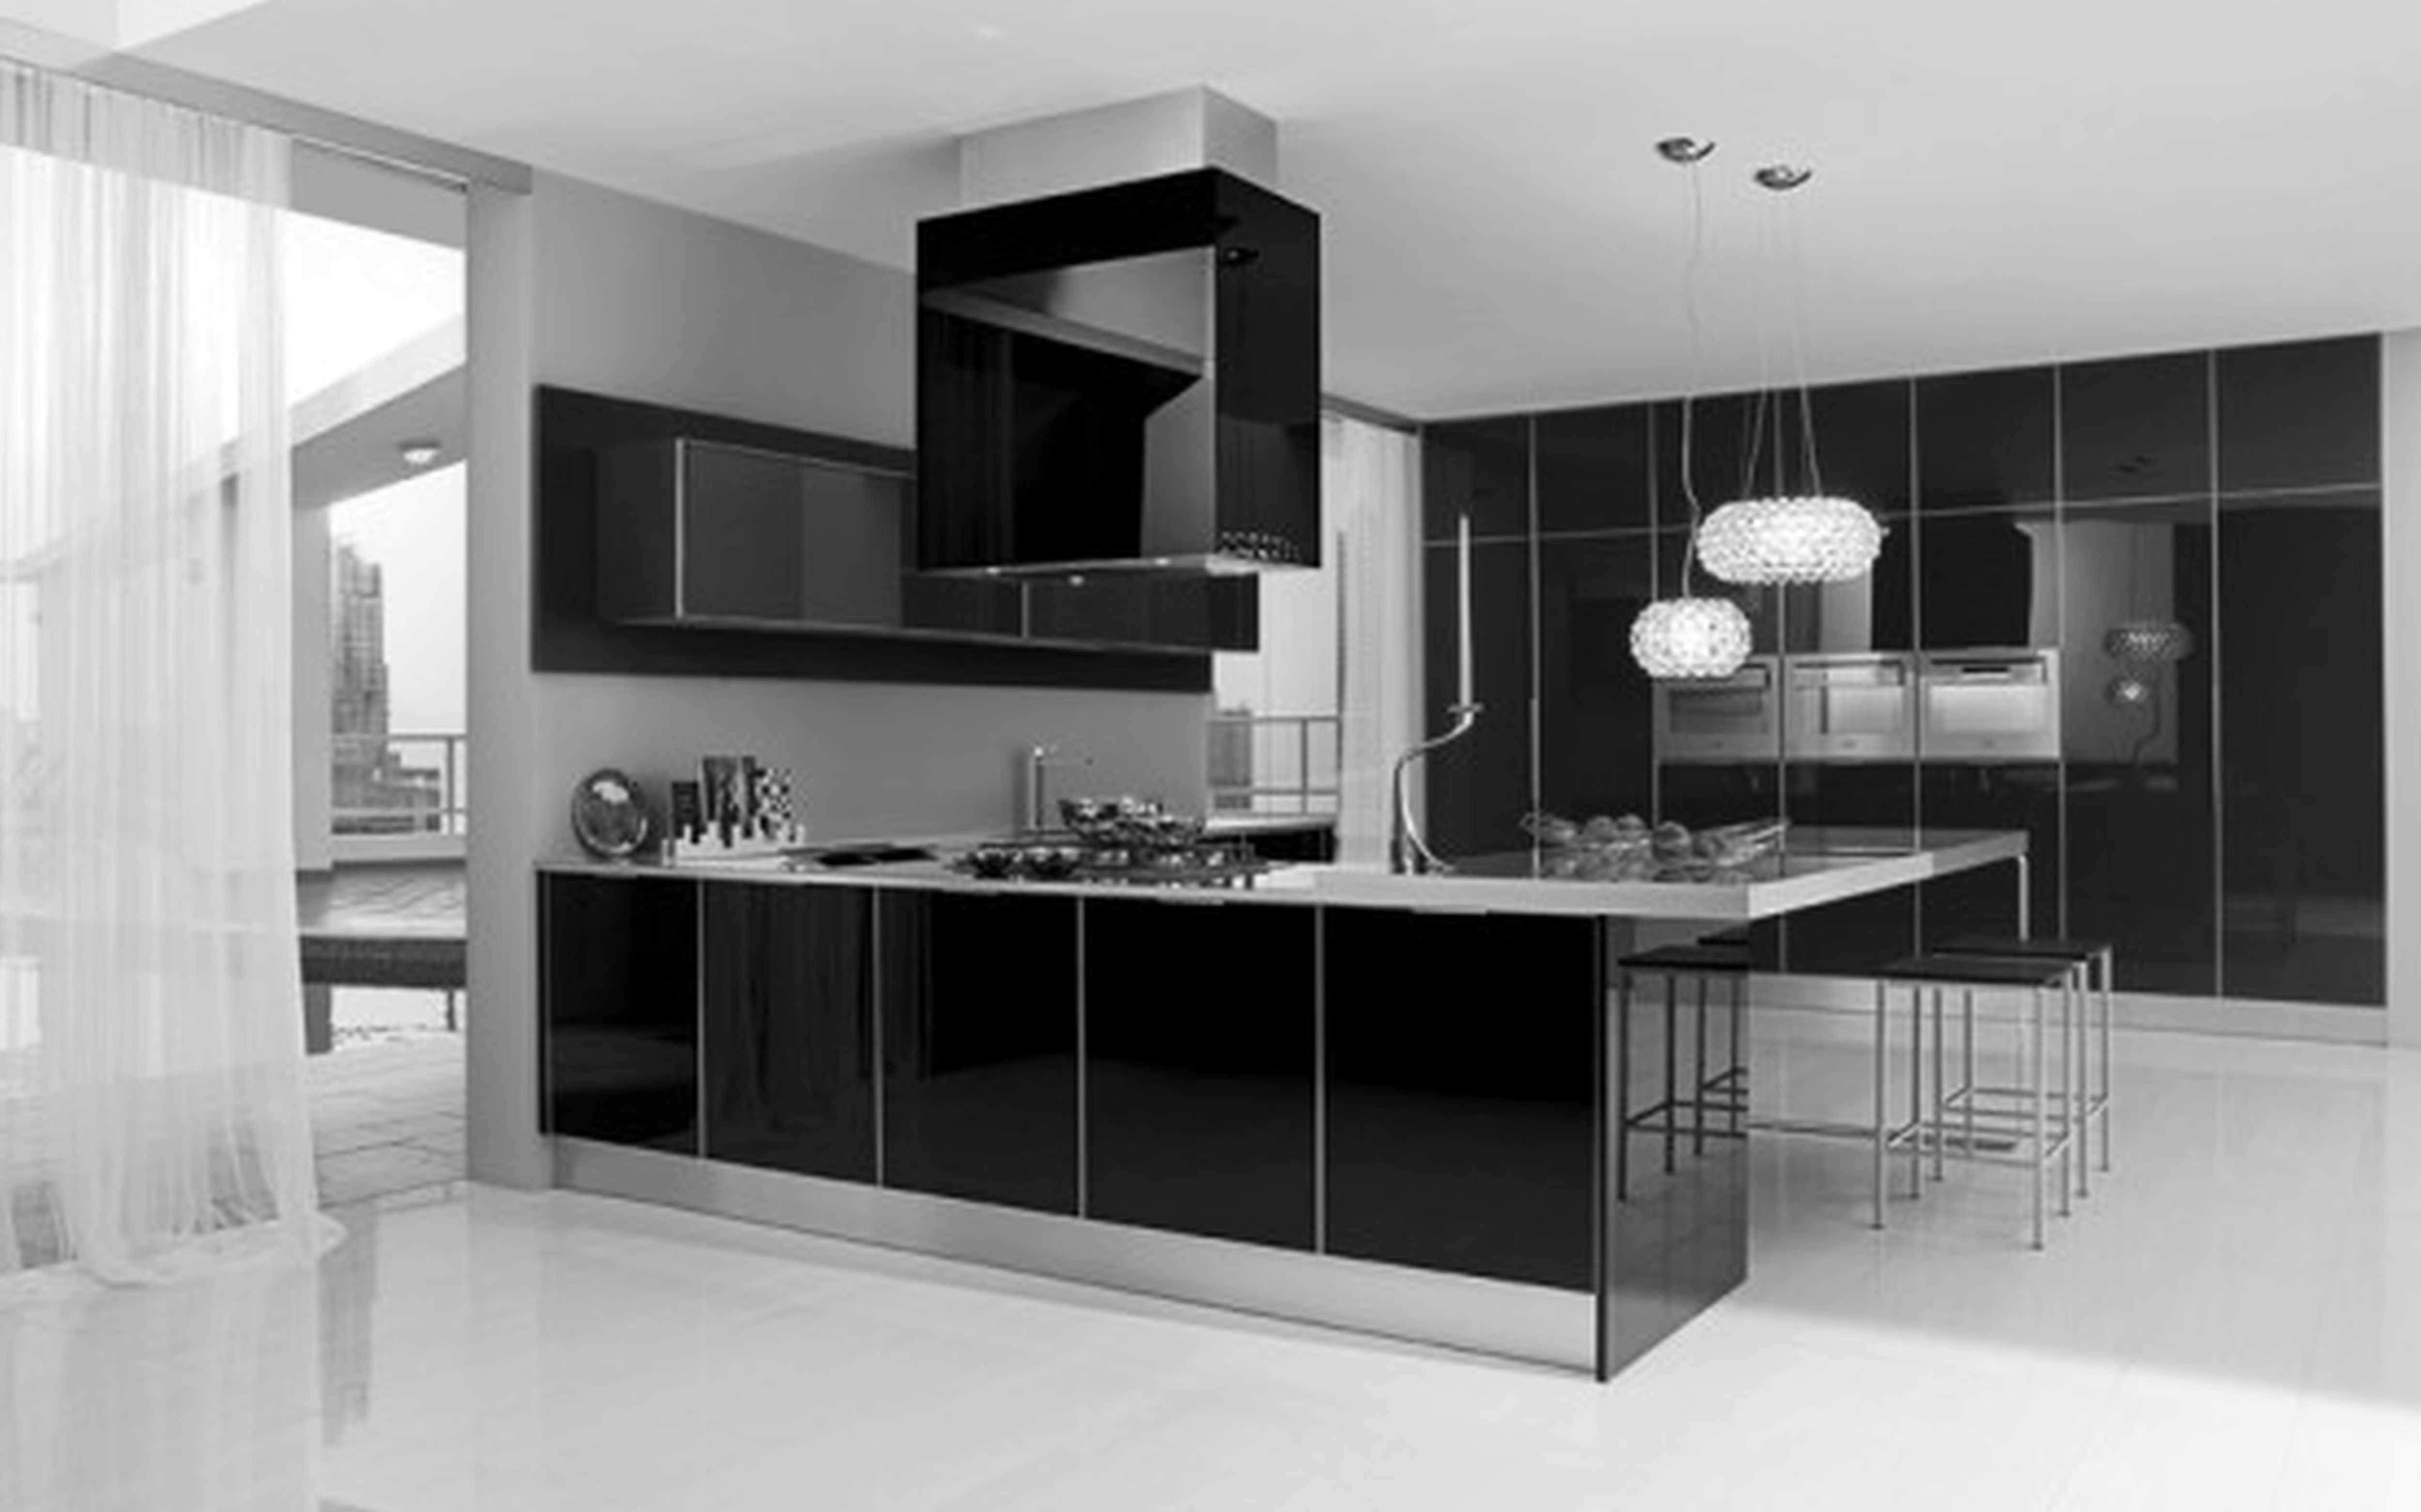 30 monochrome kitchen design ideas. Black Bedroom Furniture Sets. Home Design Ideas